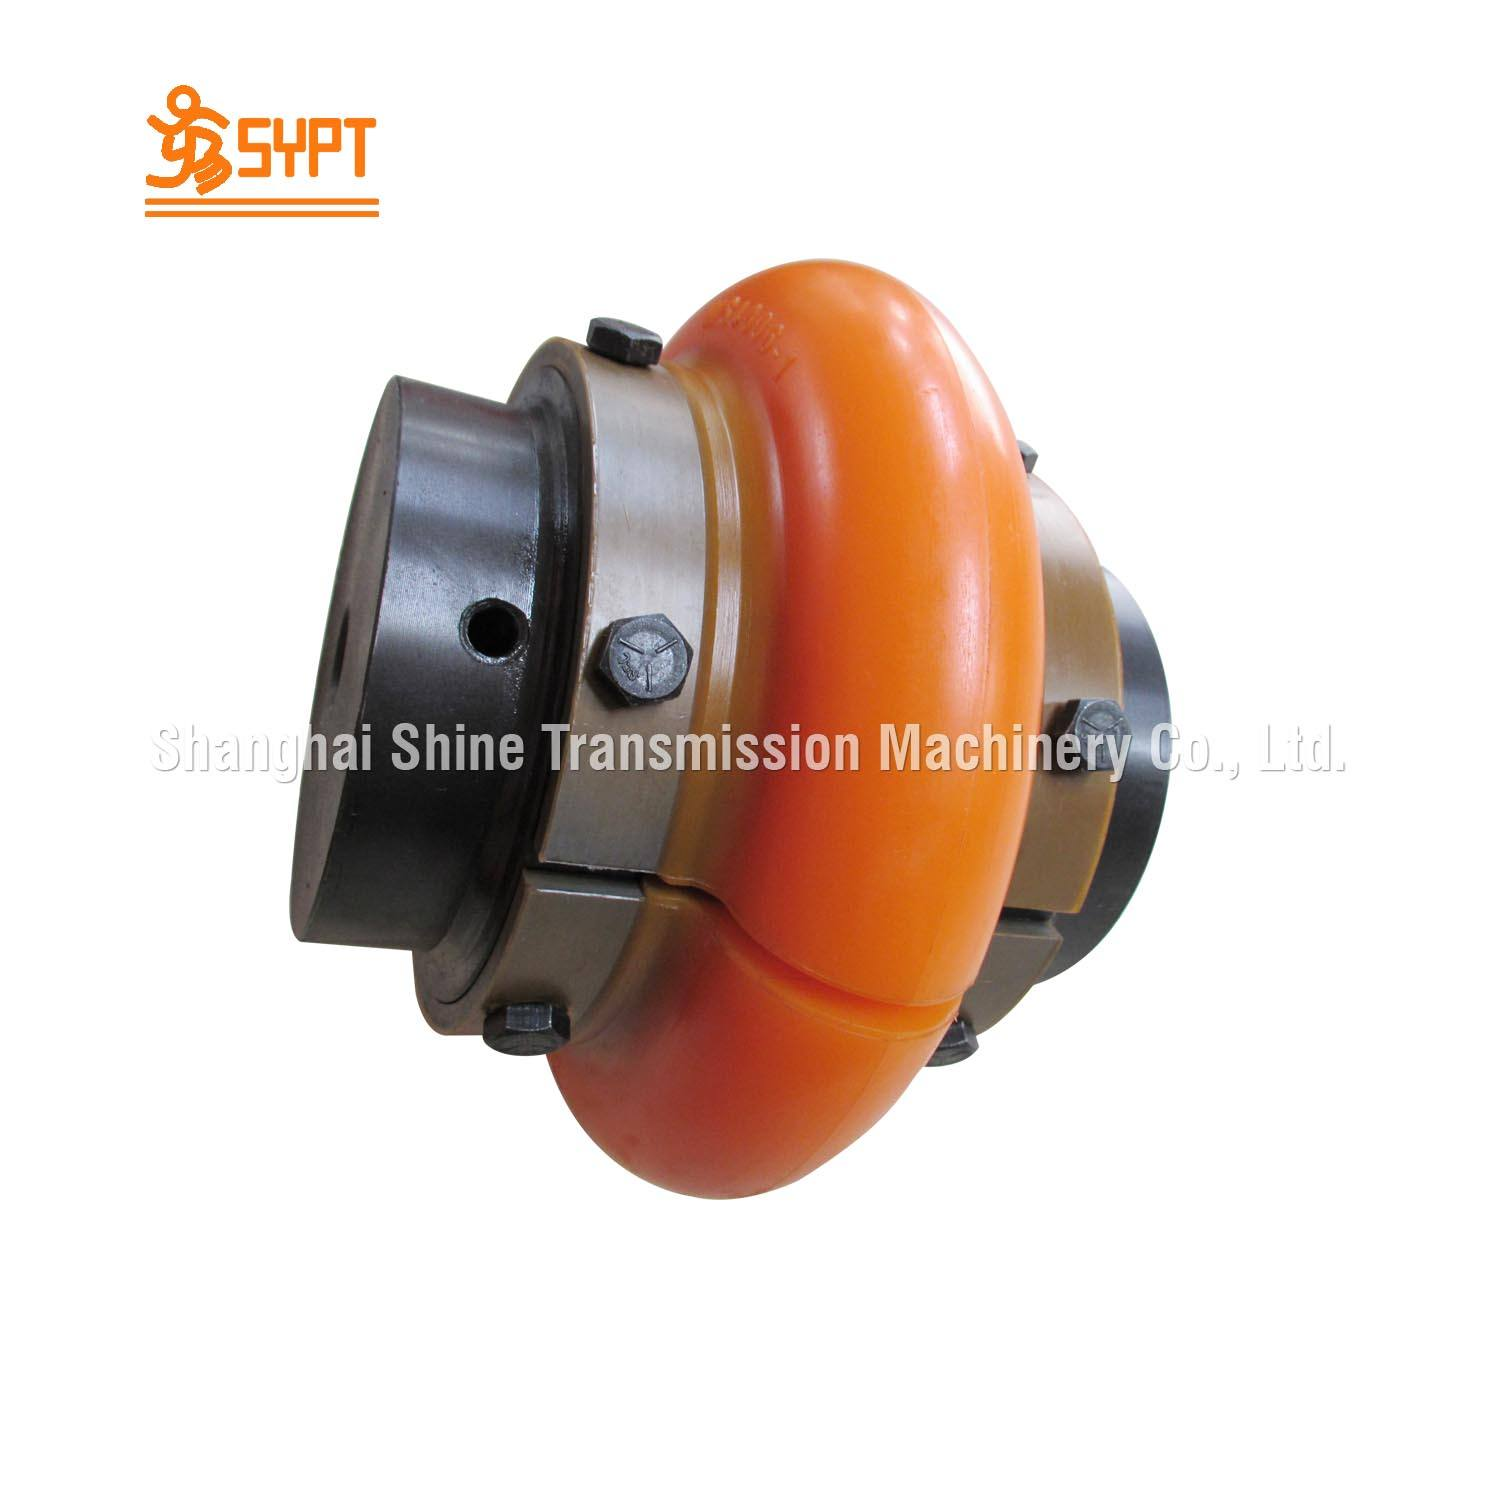 Ce ISO Standard Cast Iron Flexible Sypt E050-M Coupling for Air Compressor (Equivalent to Omega couplings)